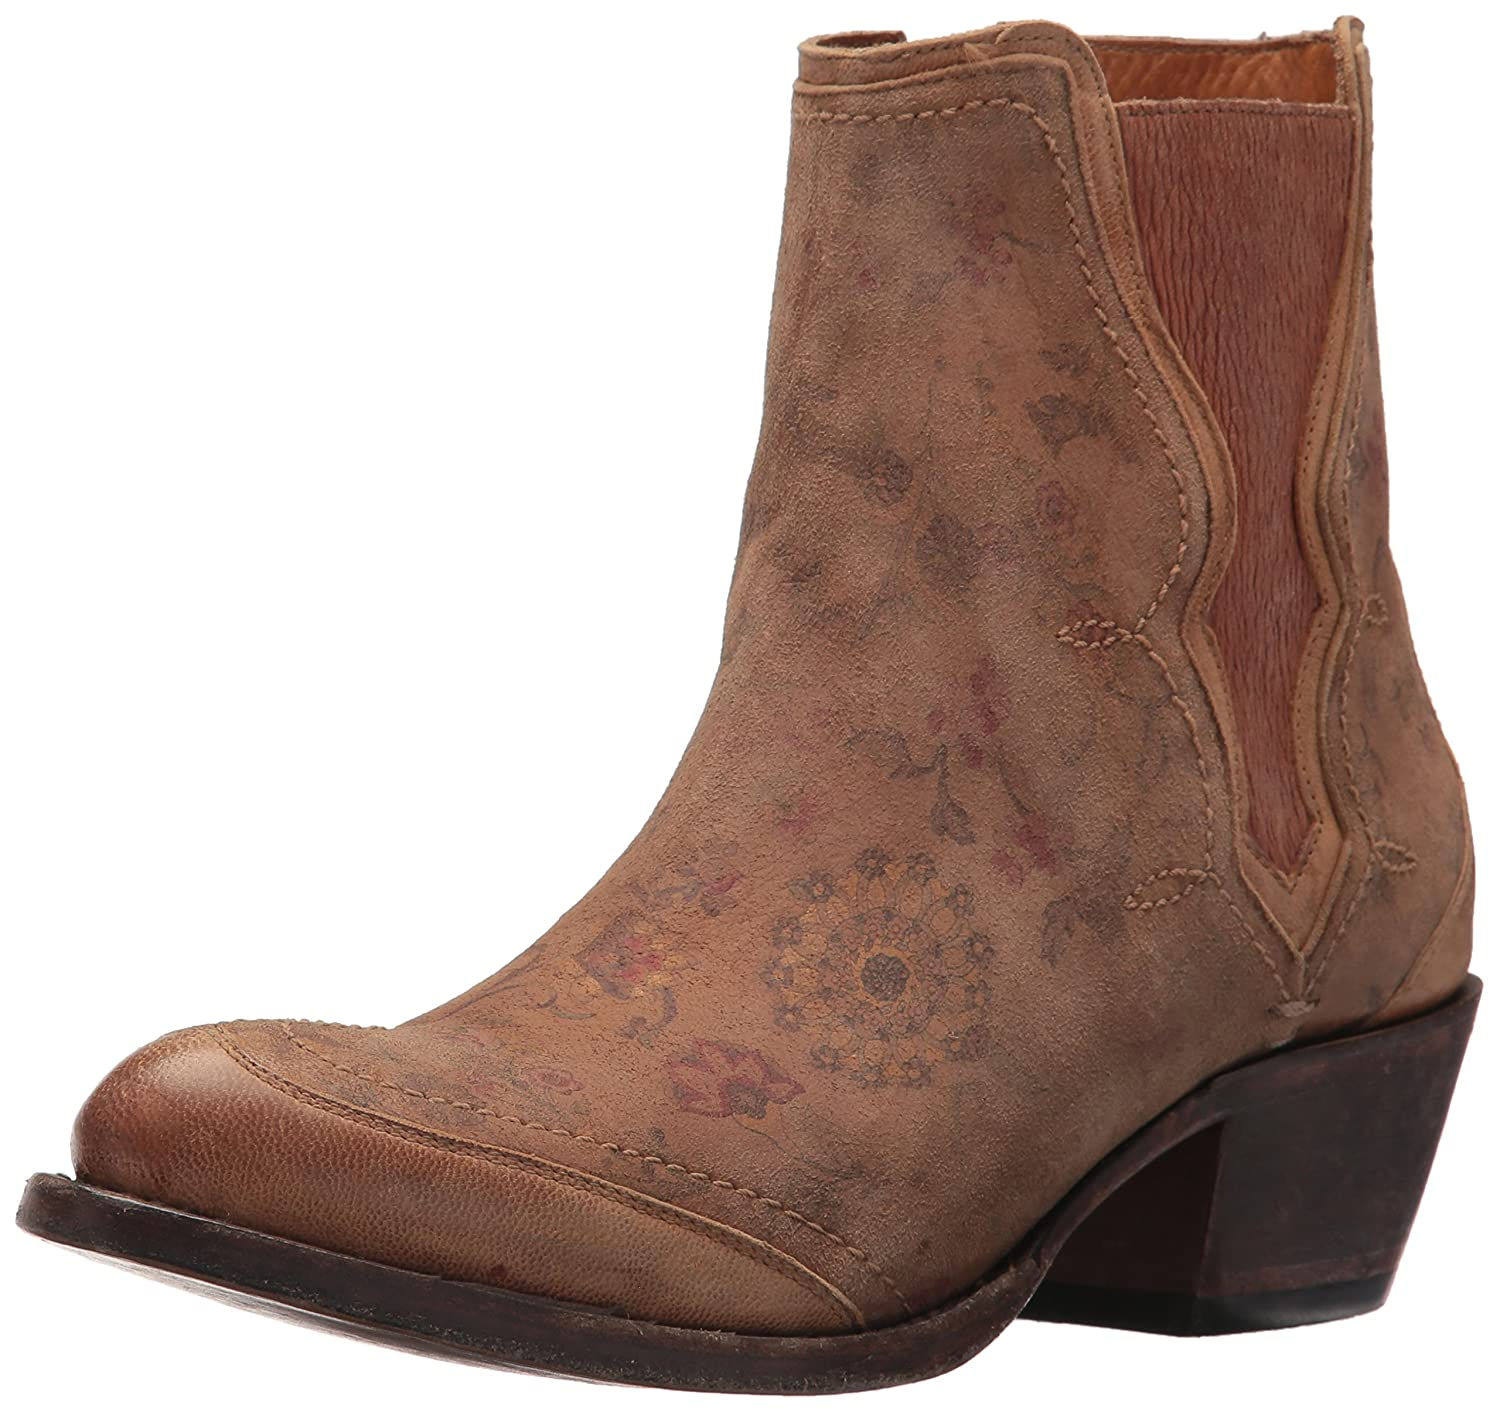 Lucchese Bootmaker Women's Gia Ankle Boot B0752WQ4SG 7 B(M) US|Natural Printed